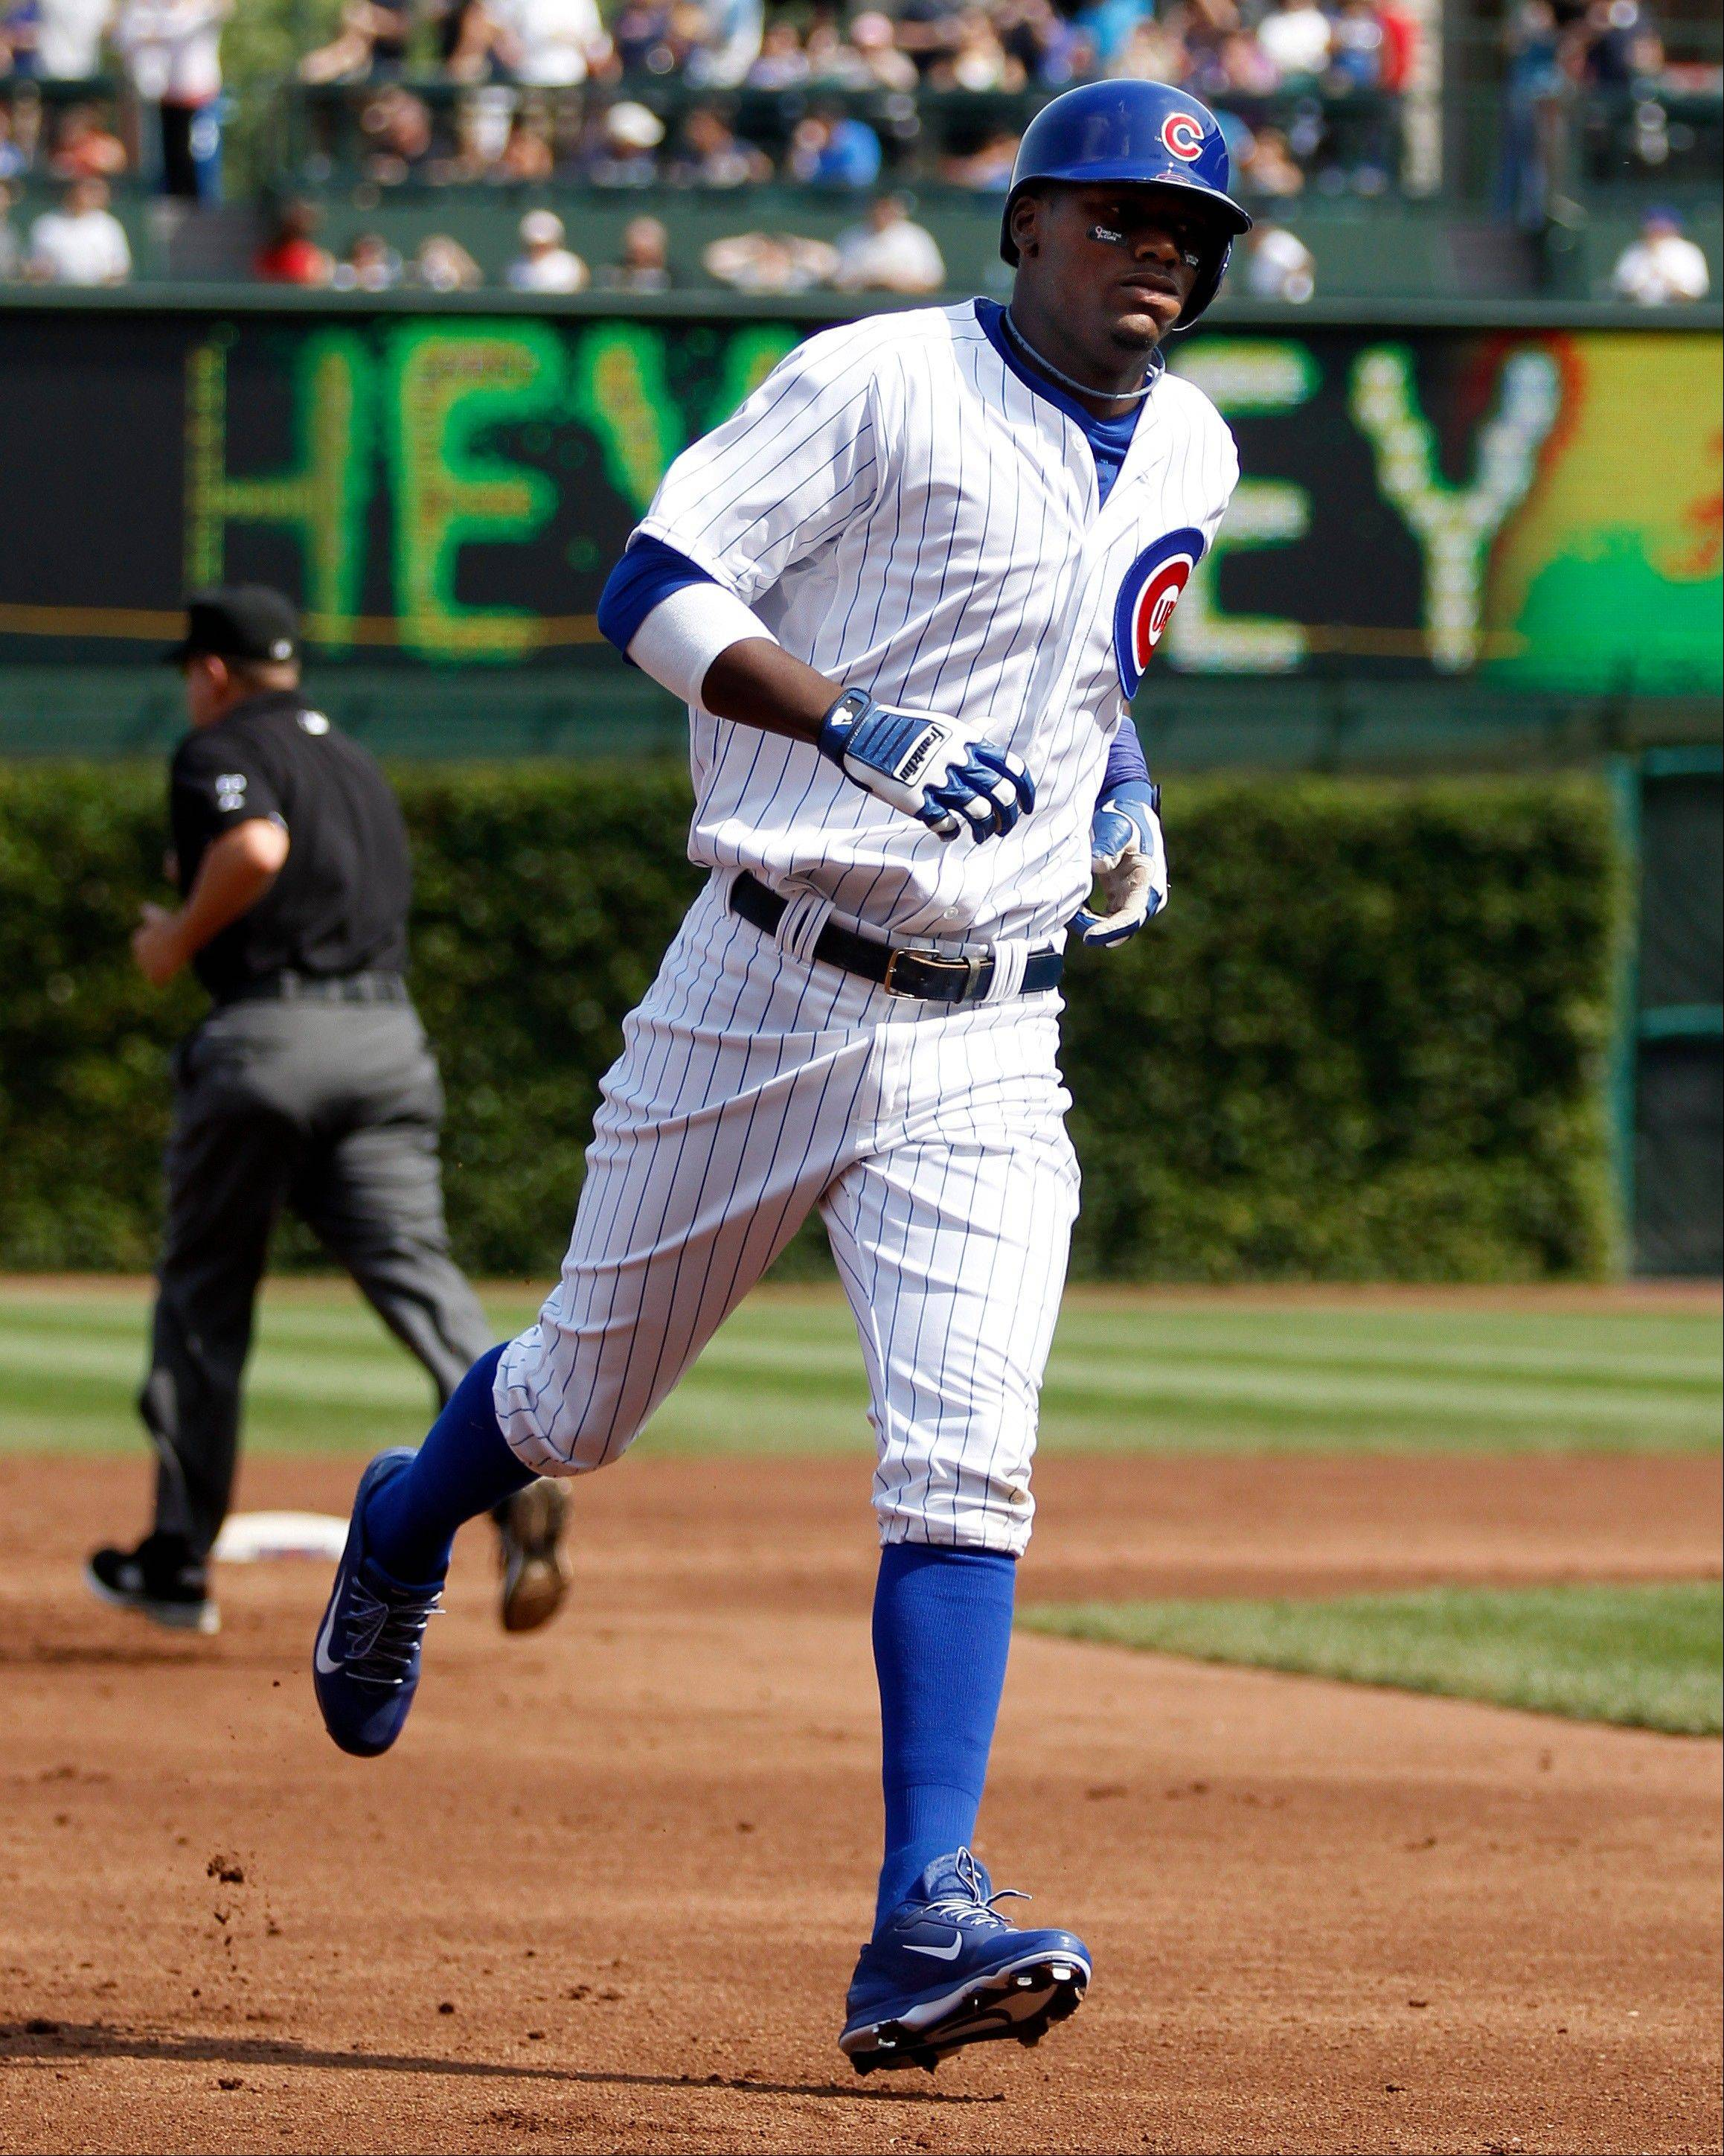 The Cubs' Junior Lake rounds the bases after hitting a grand slam against the Milwaukee Brewers during the first inning Friday at Wrigley Field.